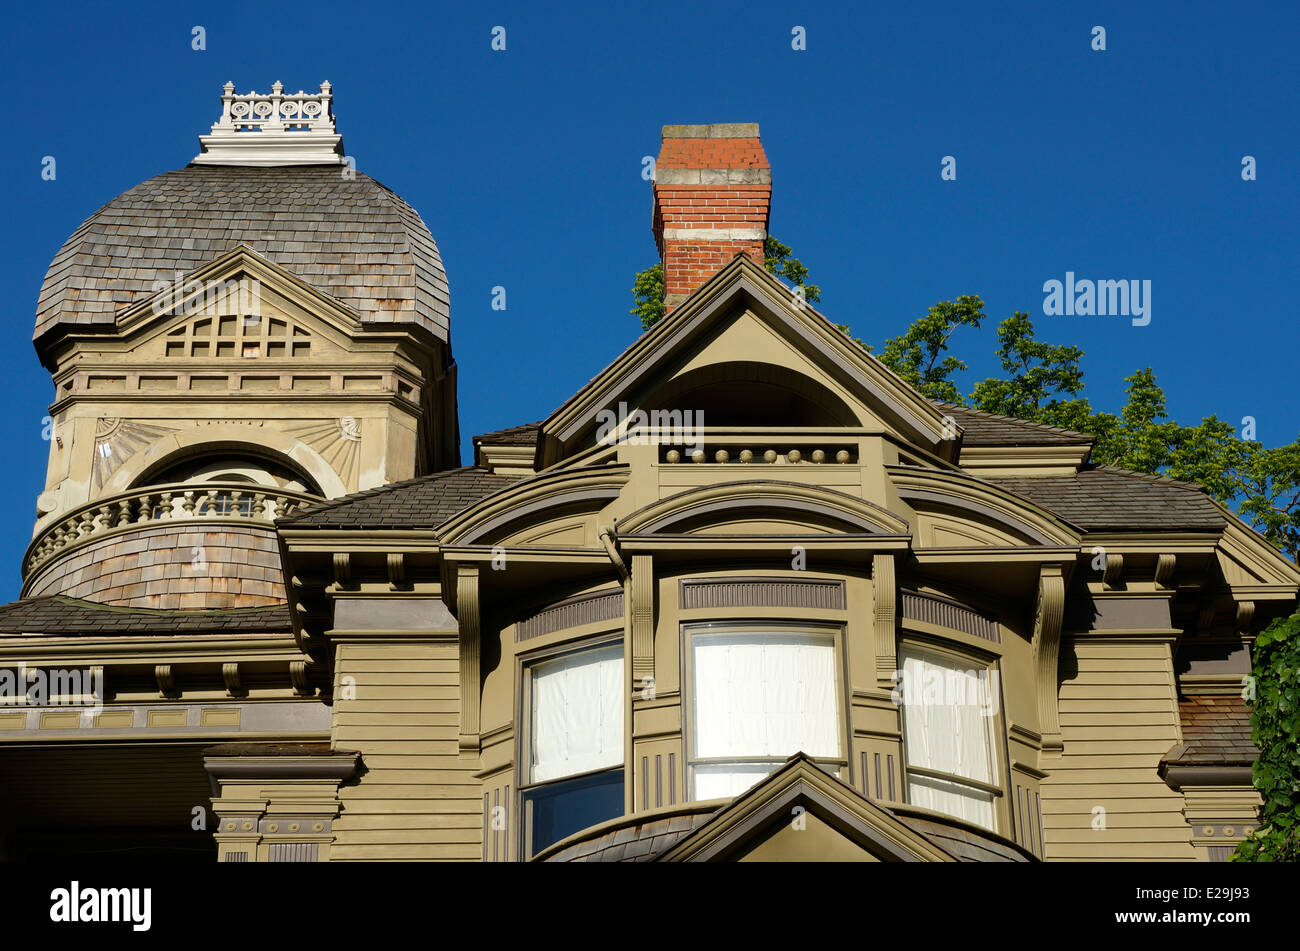 The Queen Anne style Gamwell Victorian mansion in the historical Fairhaven district of Bellingham, Washington state, - Stock Image